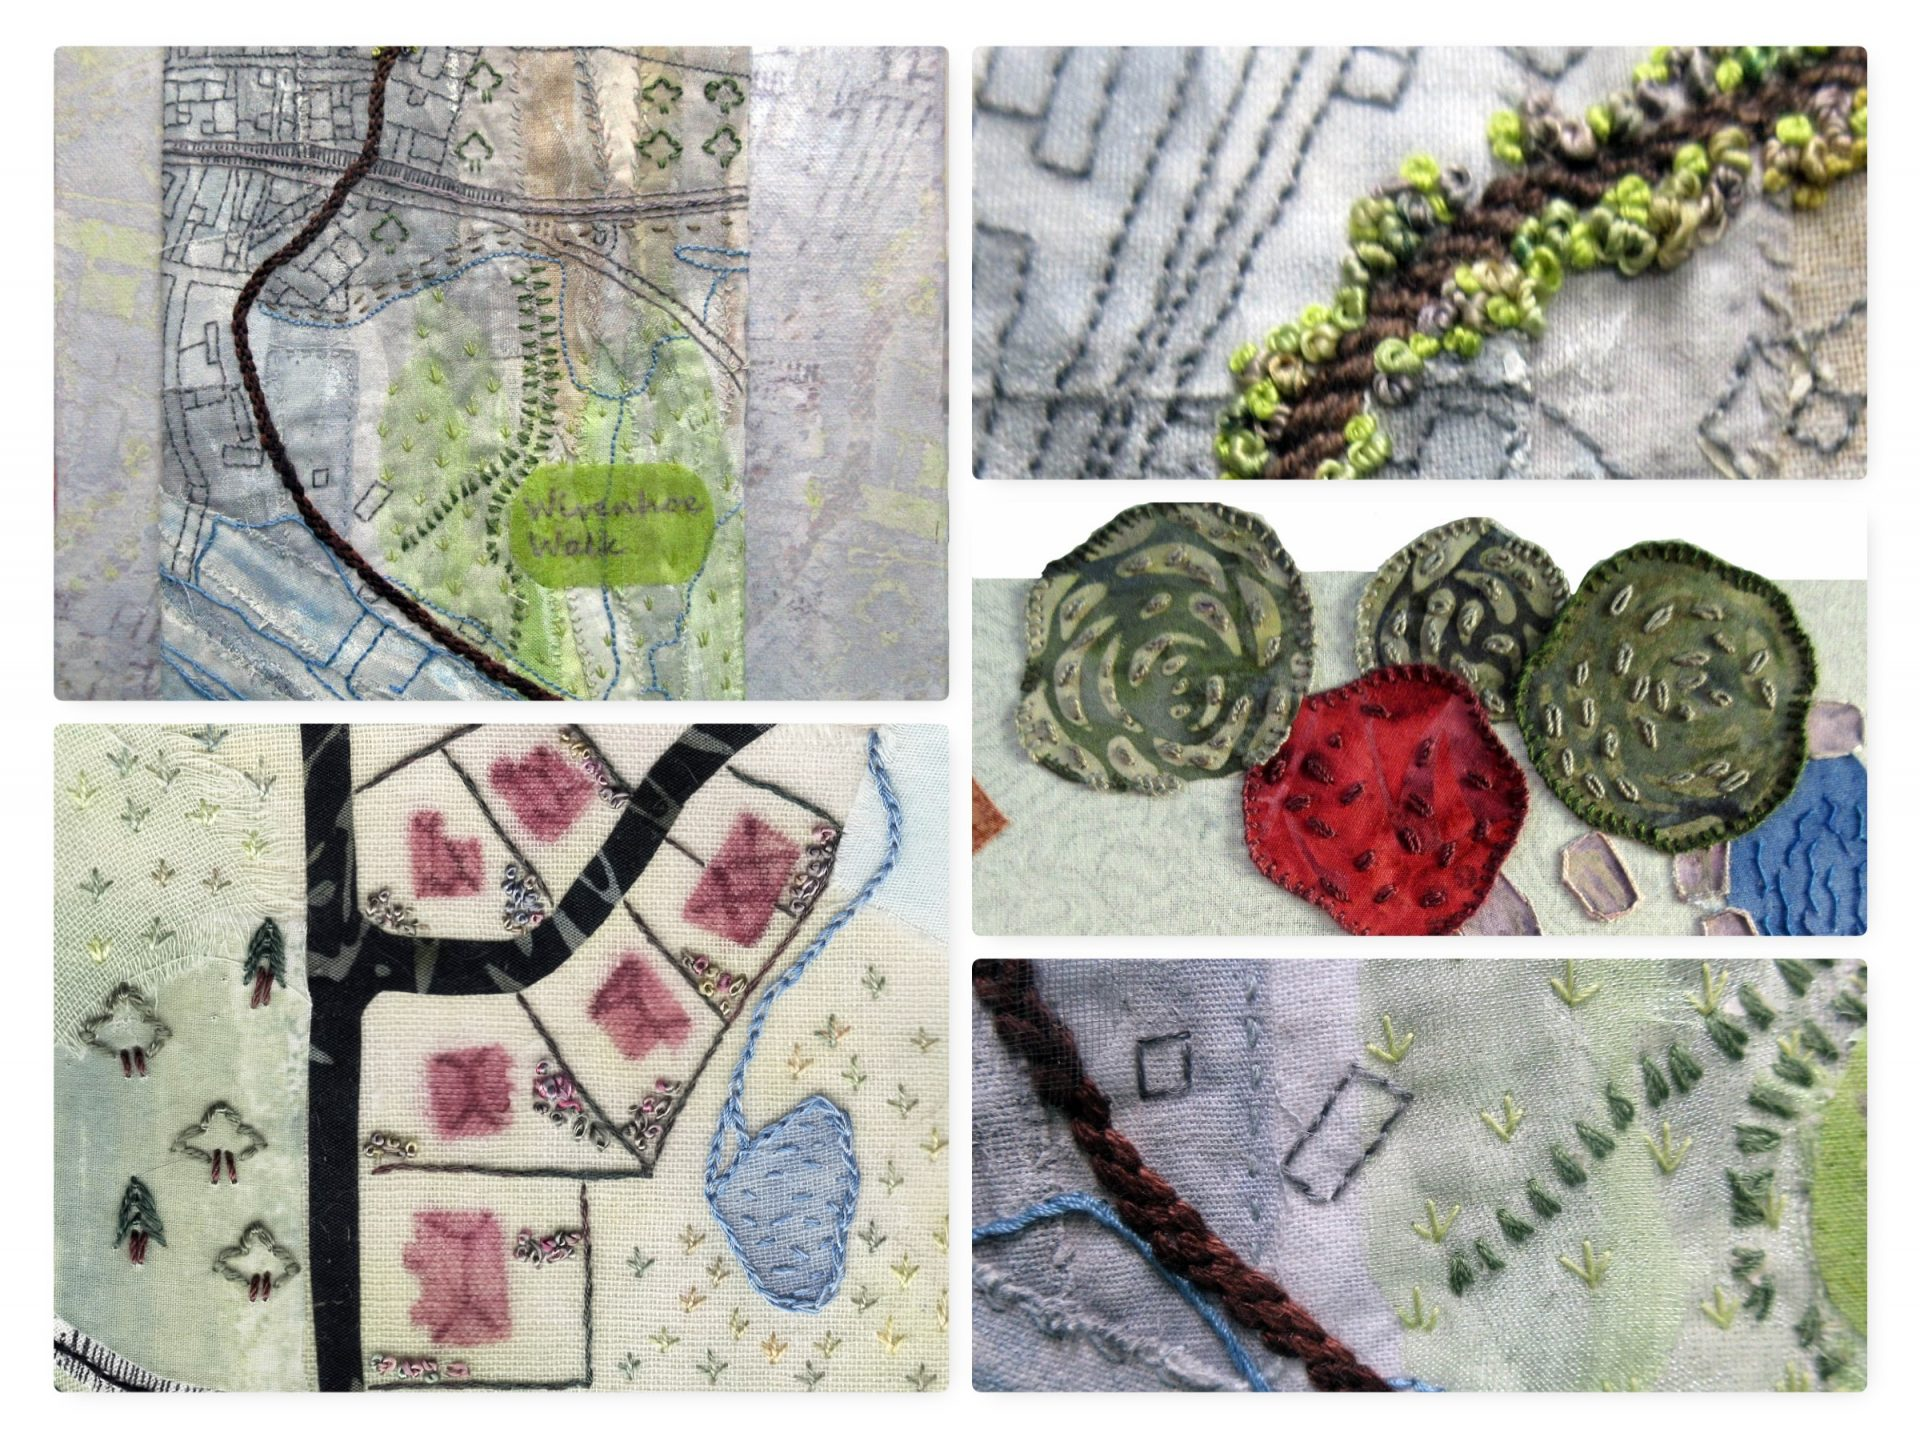 5_new-phototastic-collage-susan-rhodes